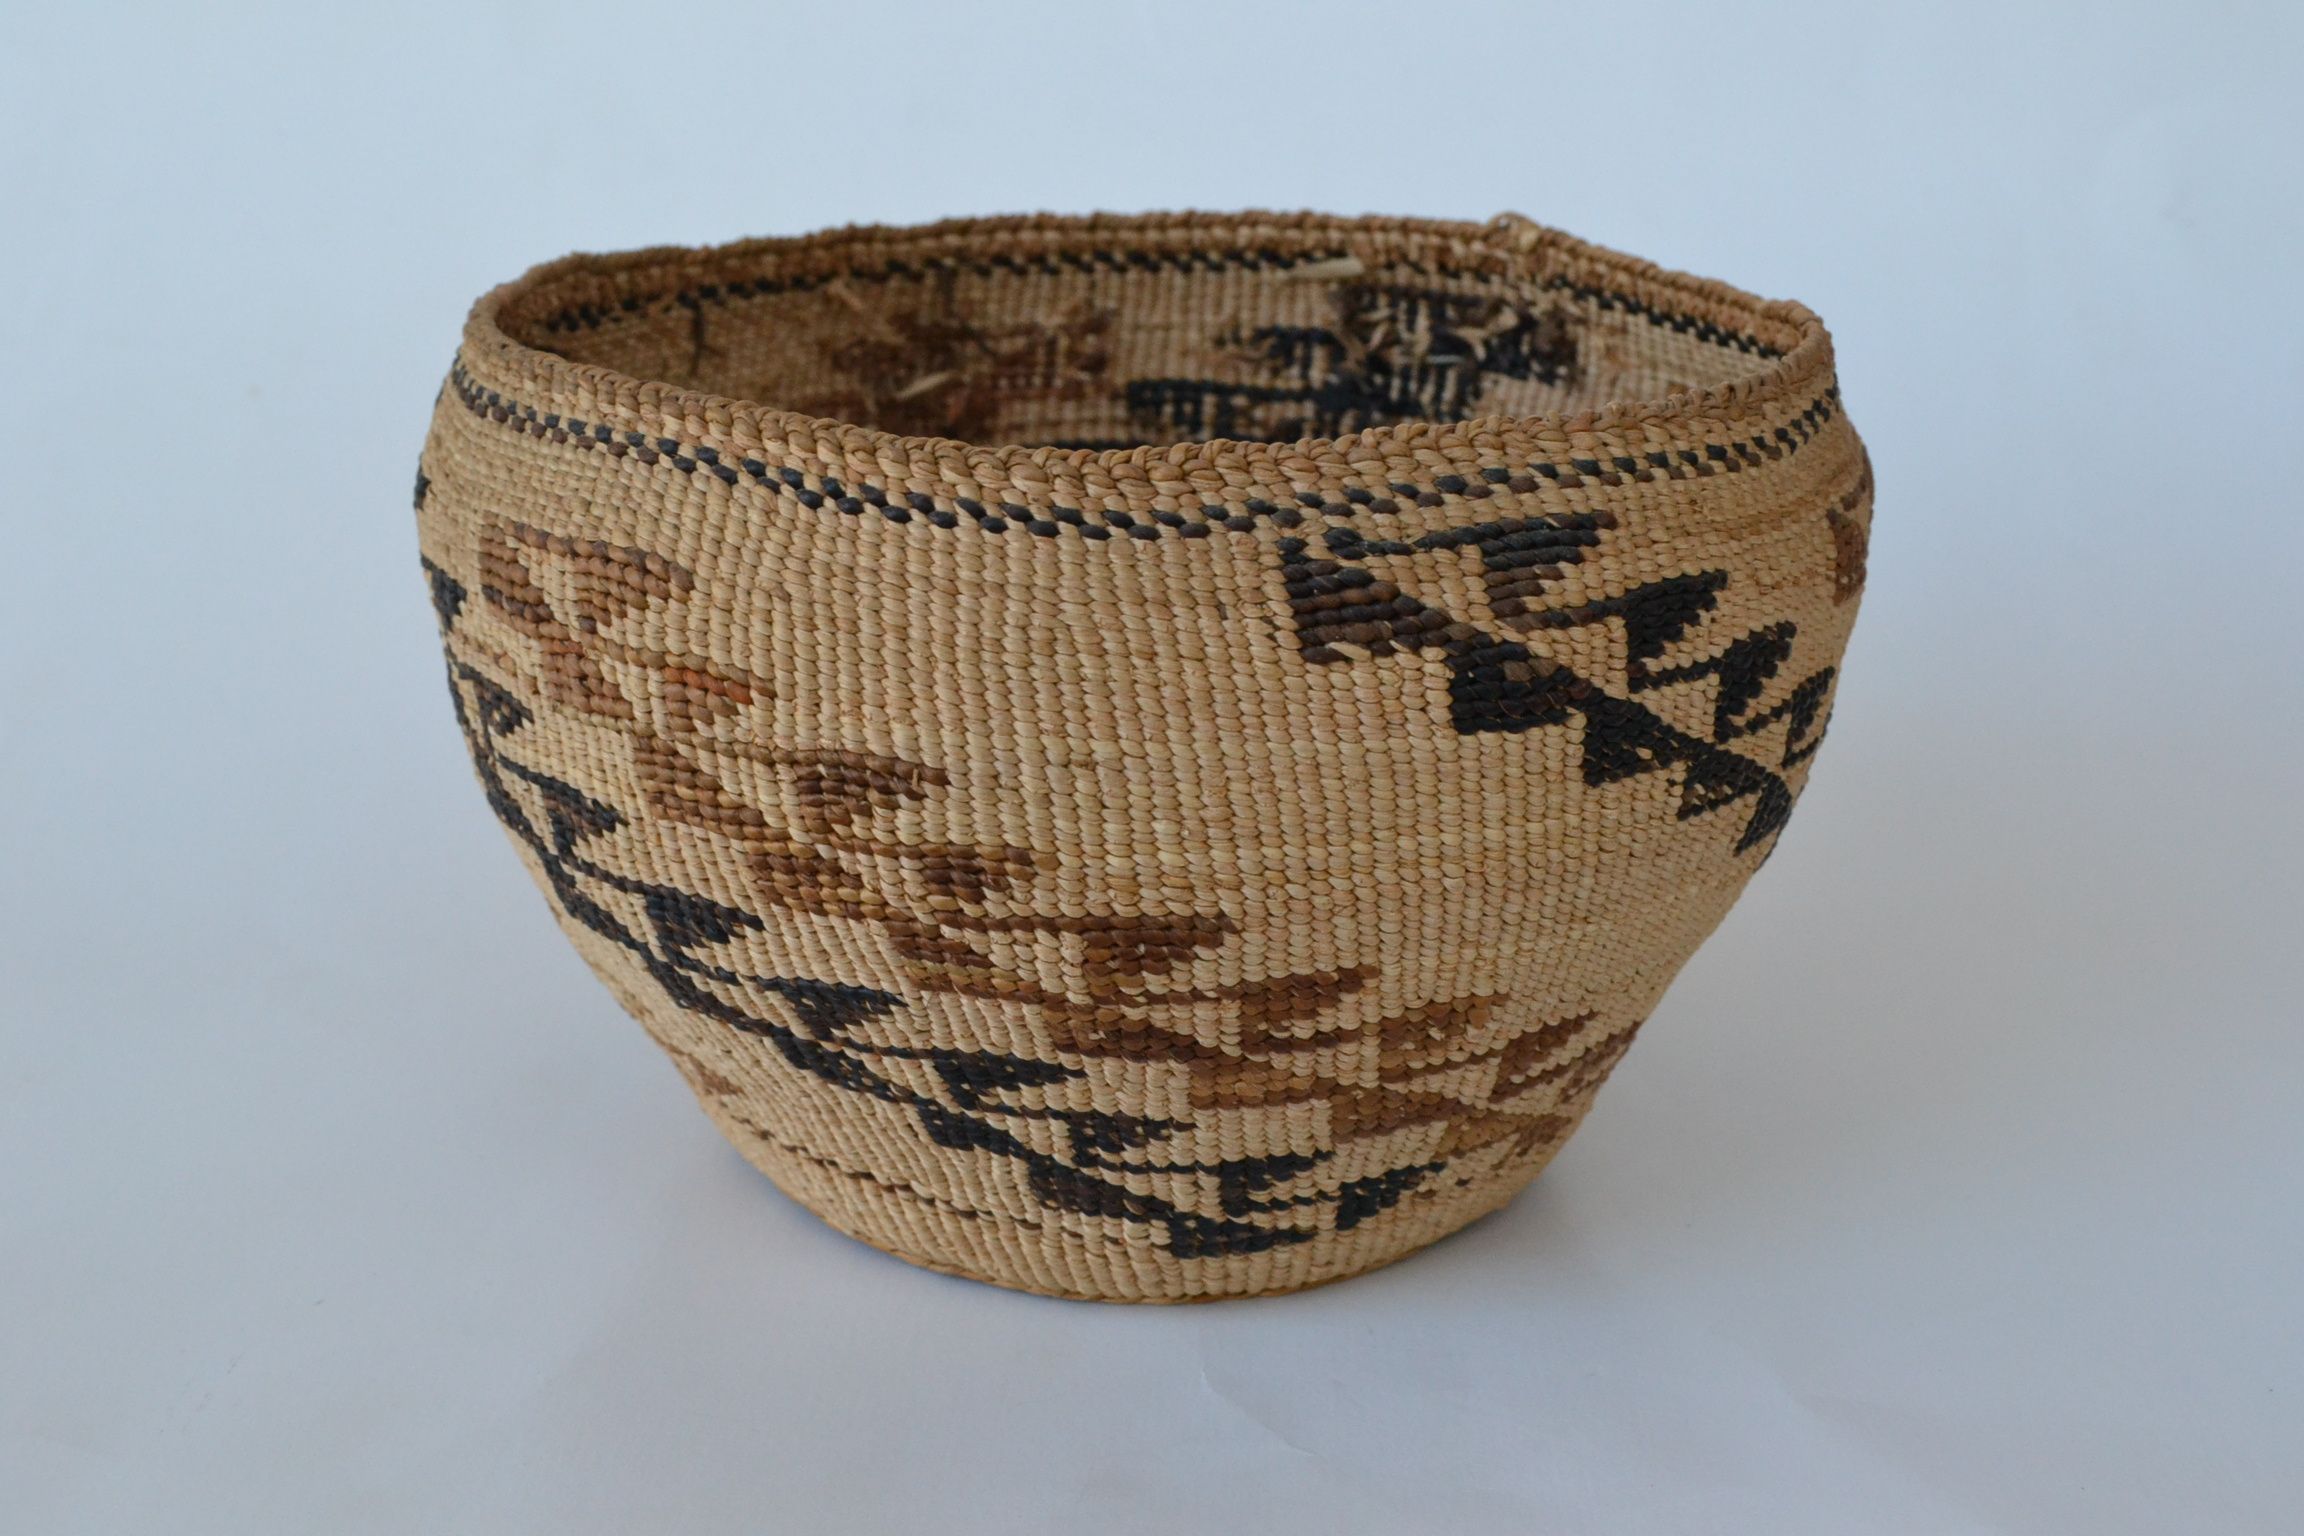 Native american basket weaving designs : Image from http redmesagallery wp content uploads